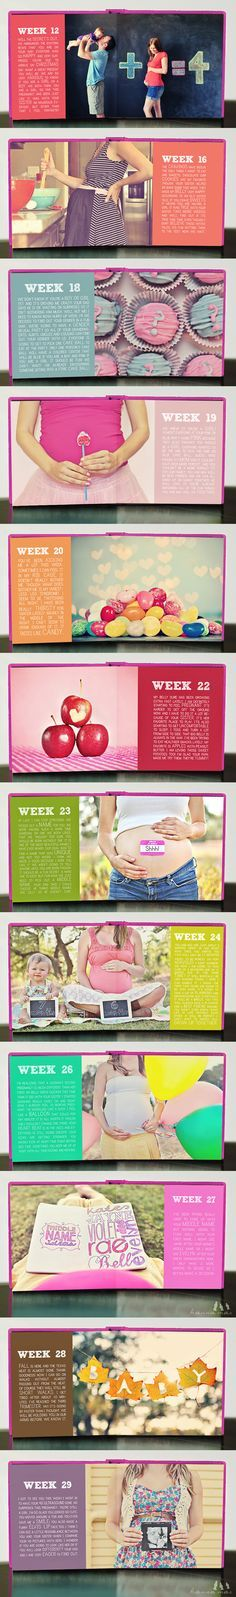 An expecting mother's maternity photobook. Illustrate each week of the pregnancy with a picture & a summary of what happened. Print it in a square format, similar to baby's first year photobook.